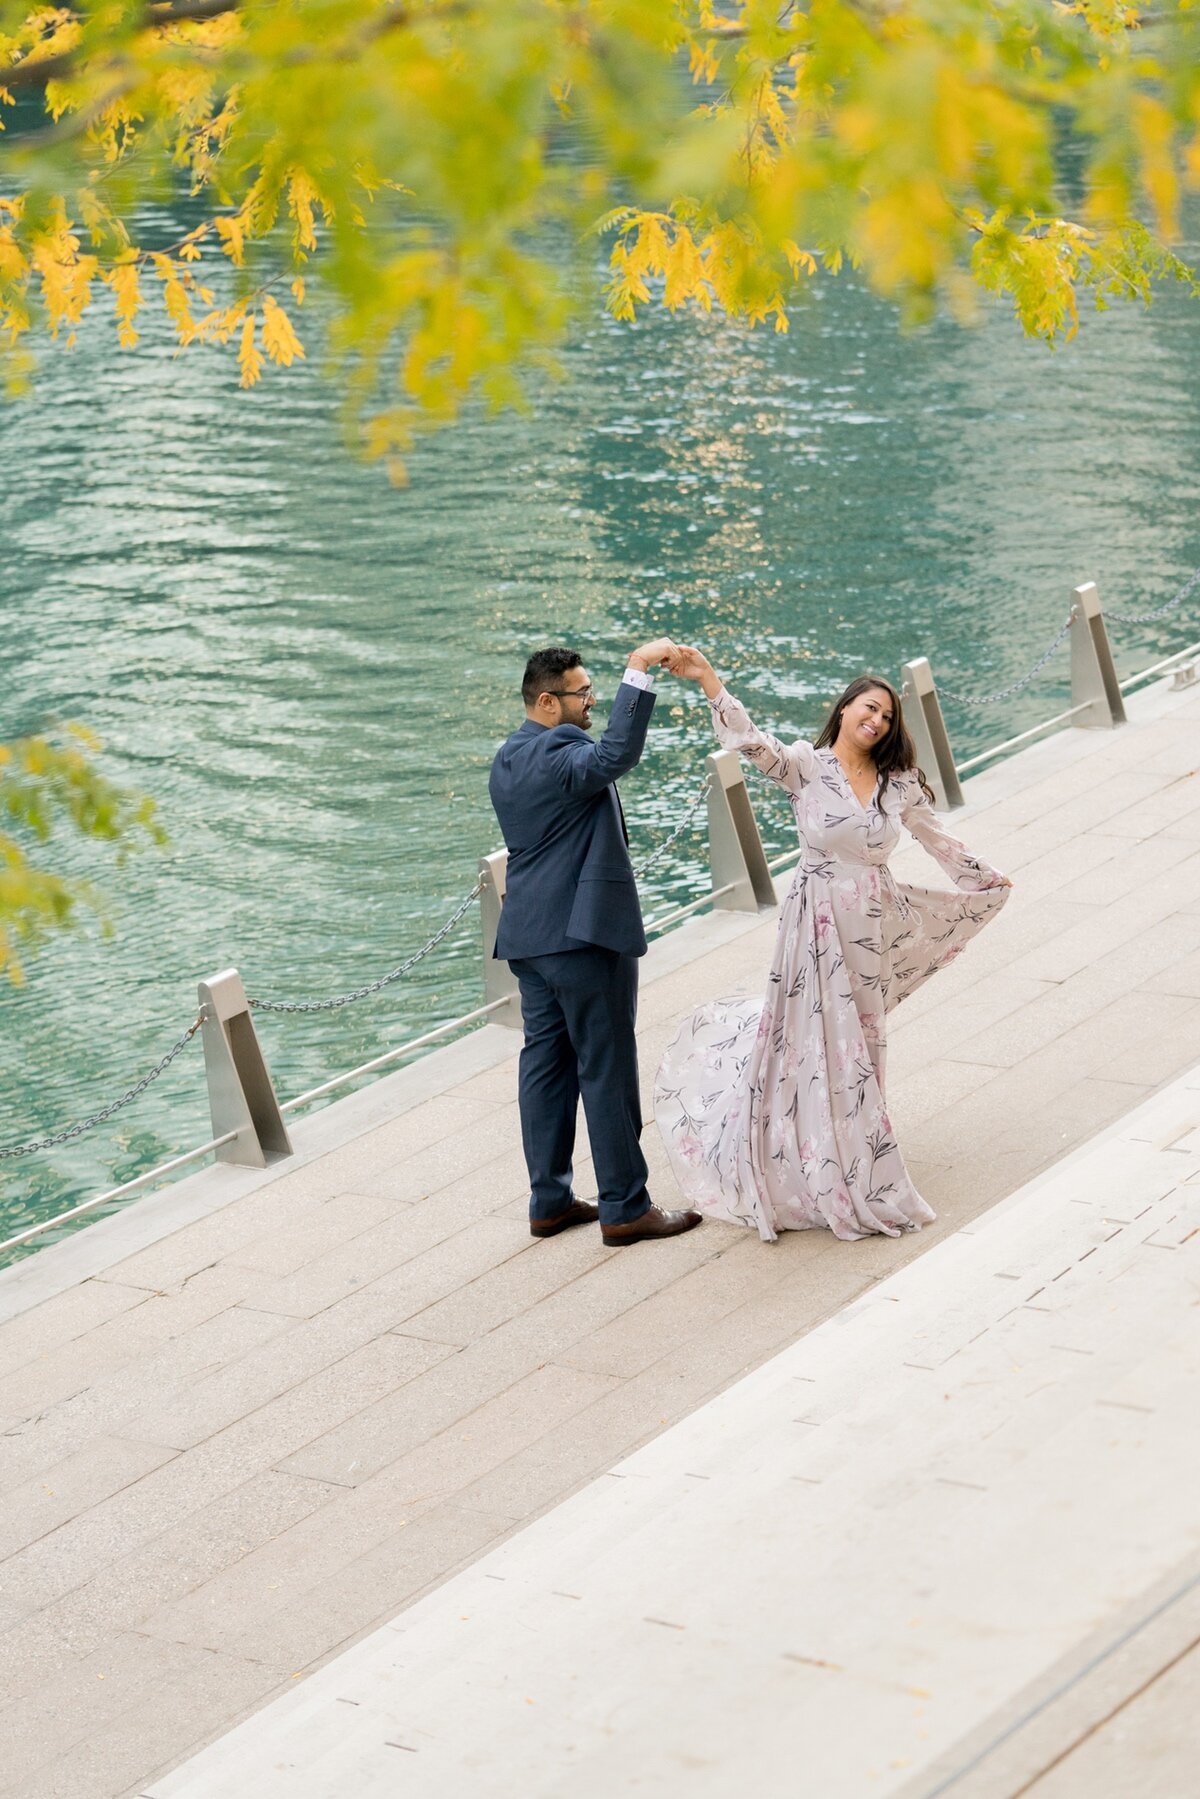 Le Cape Weddings - Chicago Engagement Session - Kinjal and Pratik -23.jpg